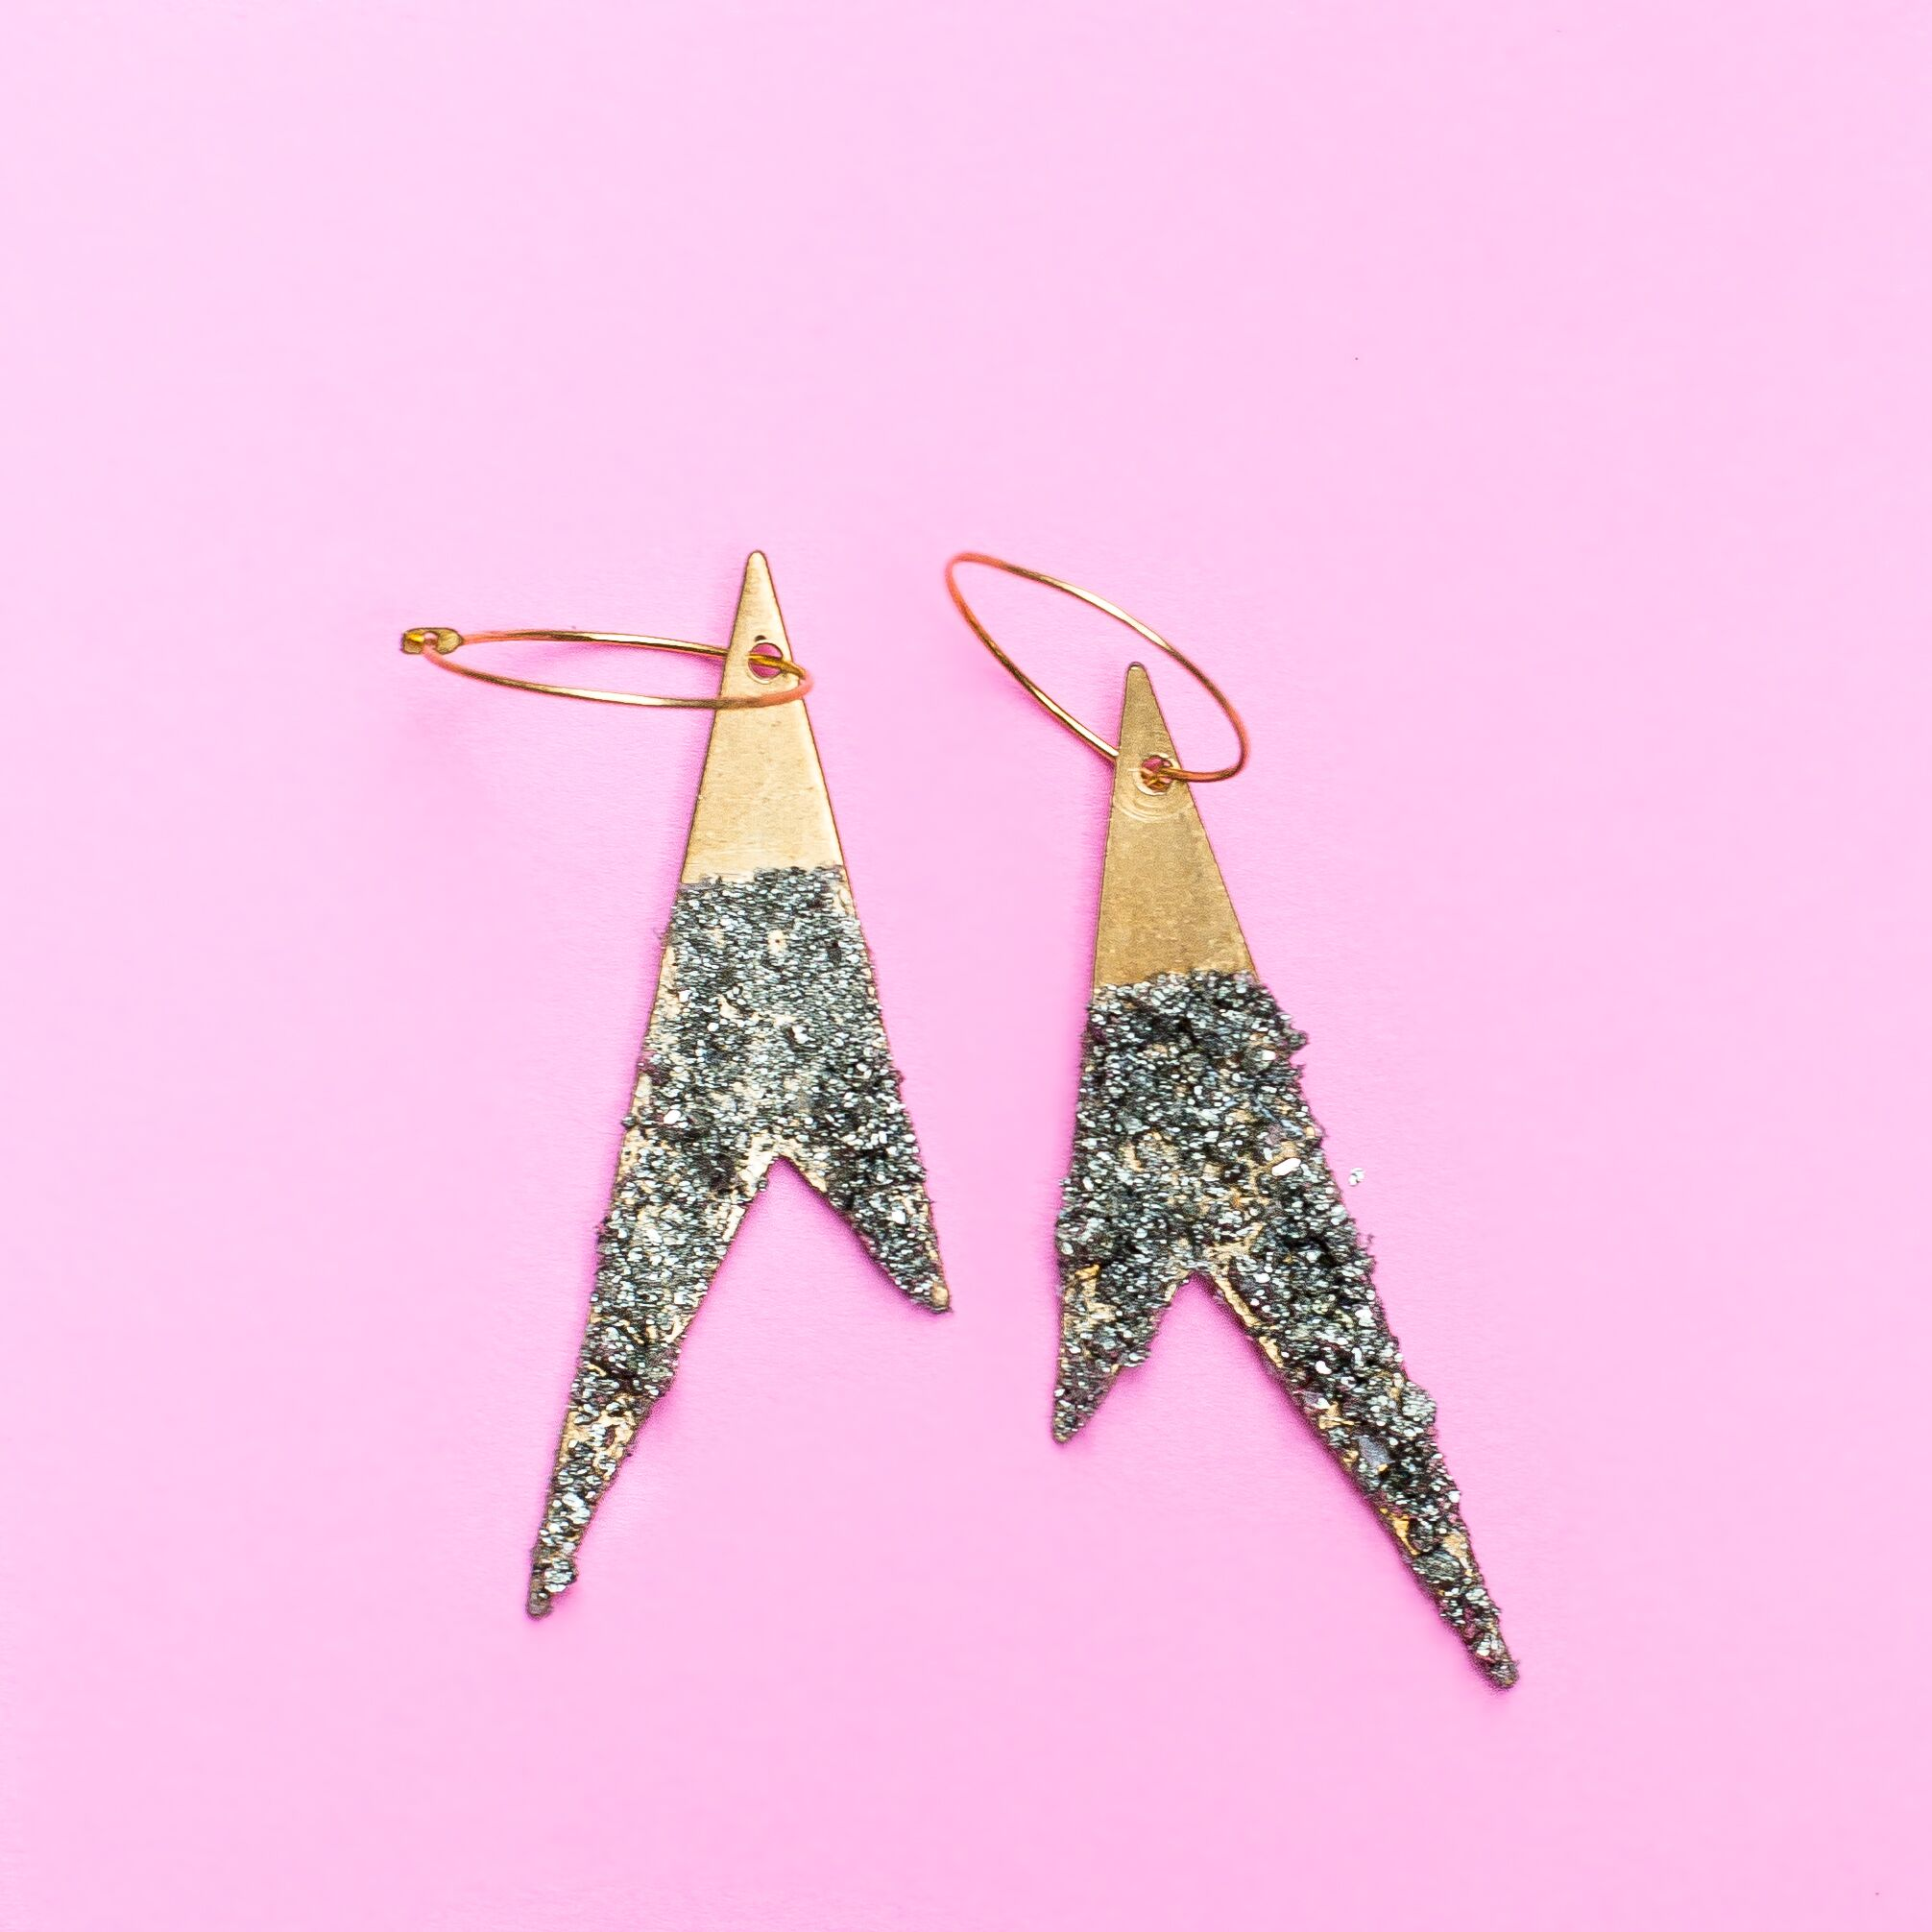 - Learn to make earrings, pendants, or bracelet charms with sparkly crushed pyrite in this new pop up workshop! This class is fun and easy for any skill level.Click here to register online.Call us at 512-963-2323 to register by phone.